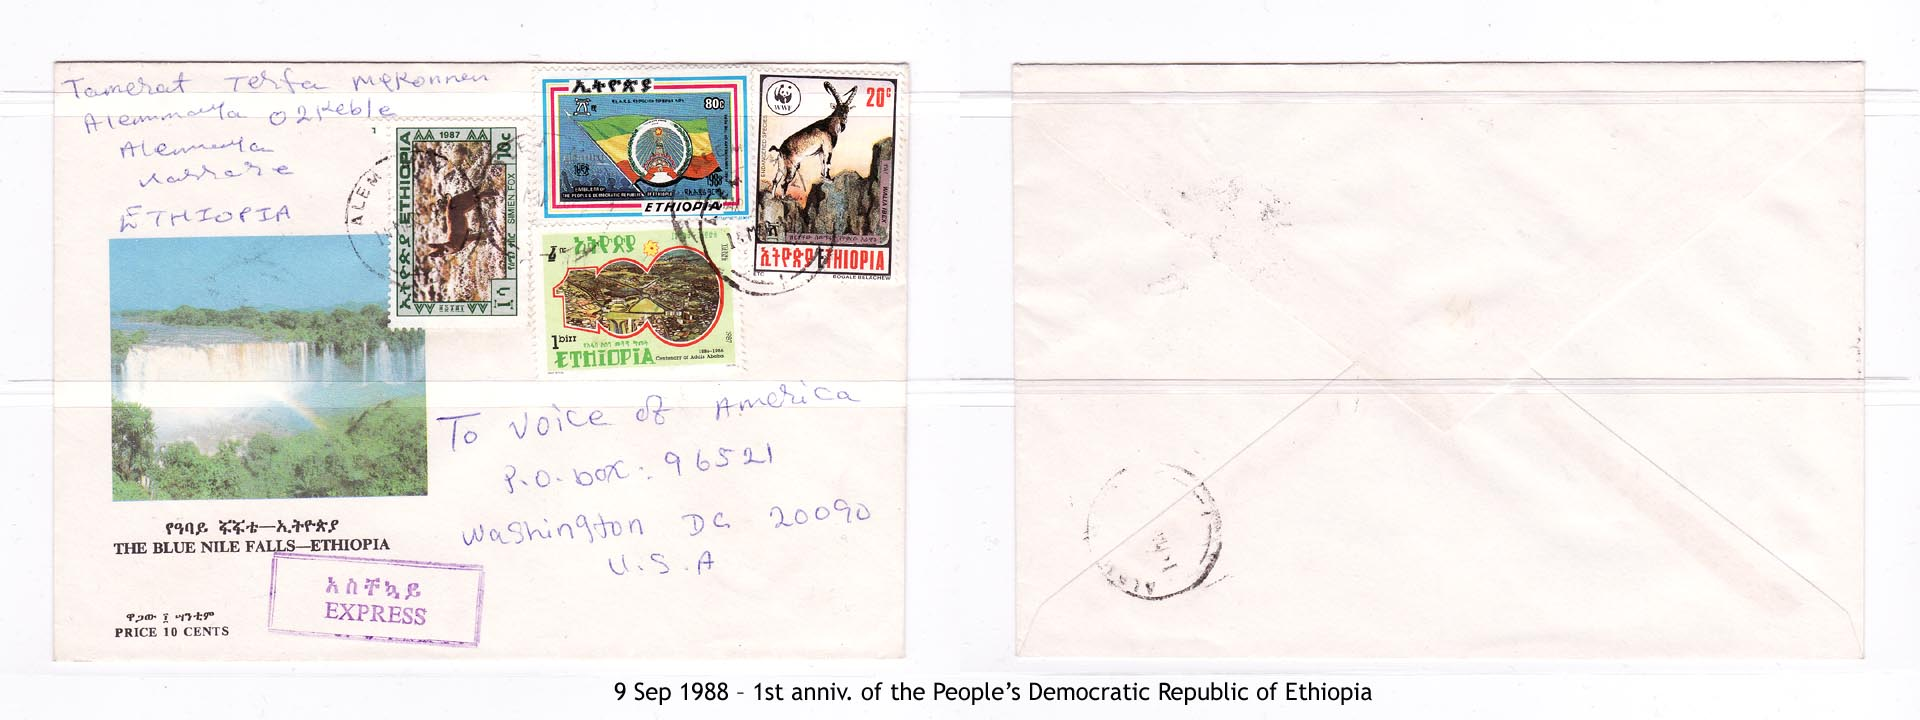 19880909 – 1st anniv. of the People's Democratic Republic of Ethiopia